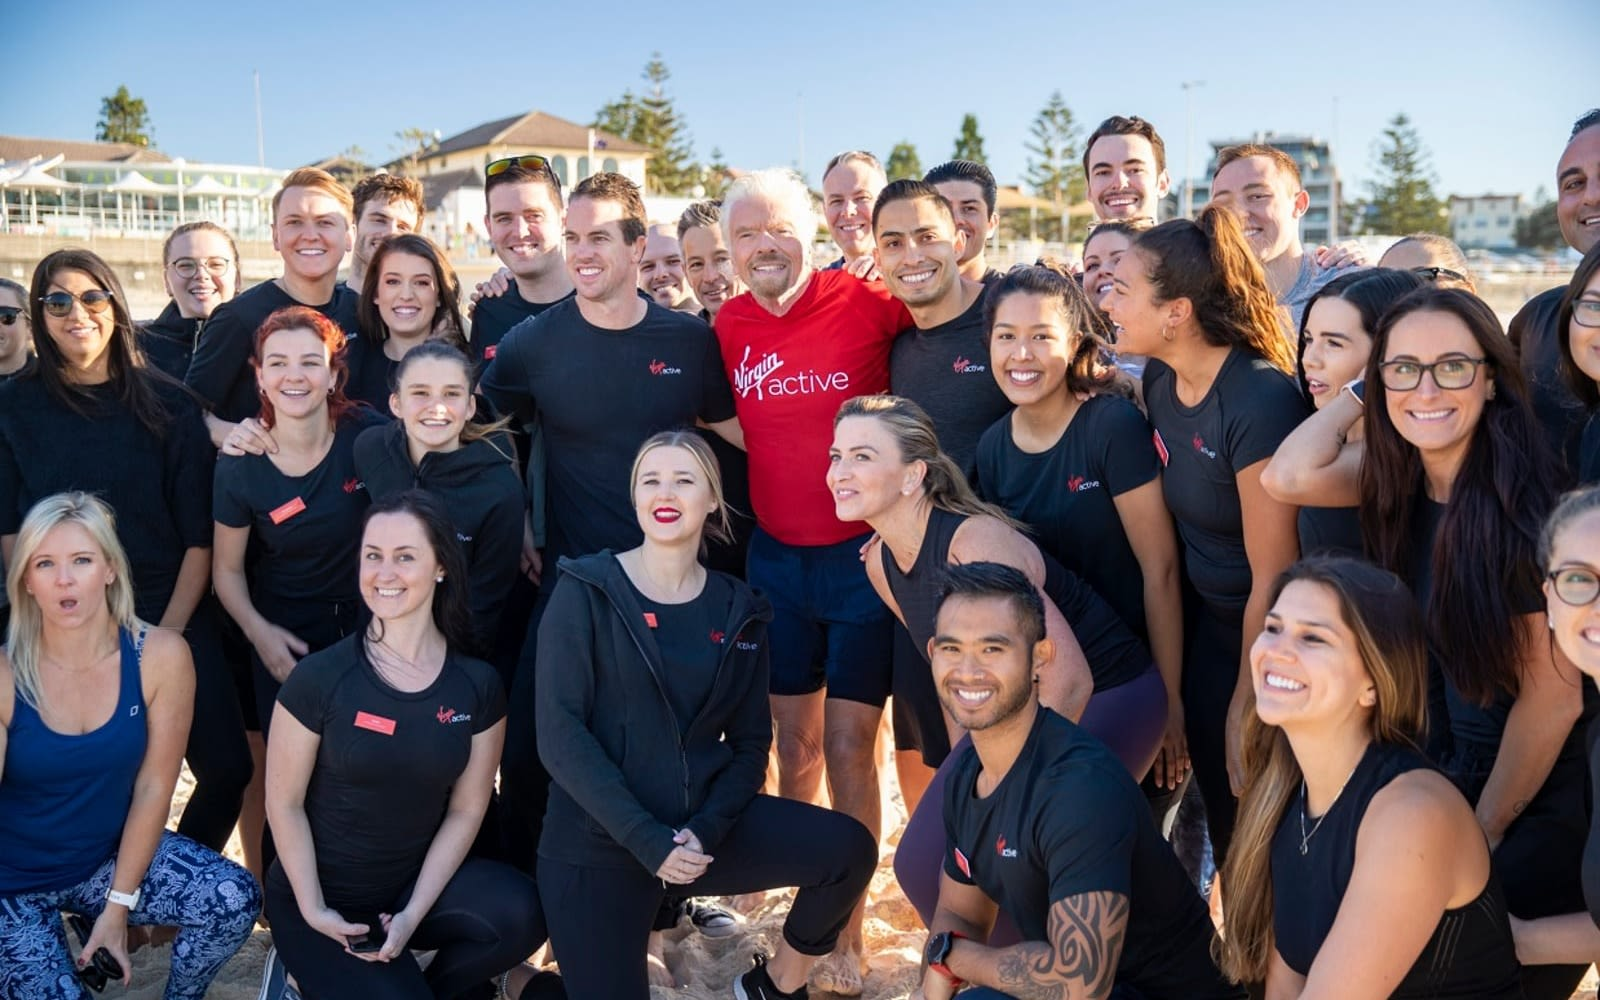 Richard Branson with the team from Virgin Active Australia on Bondi Beach